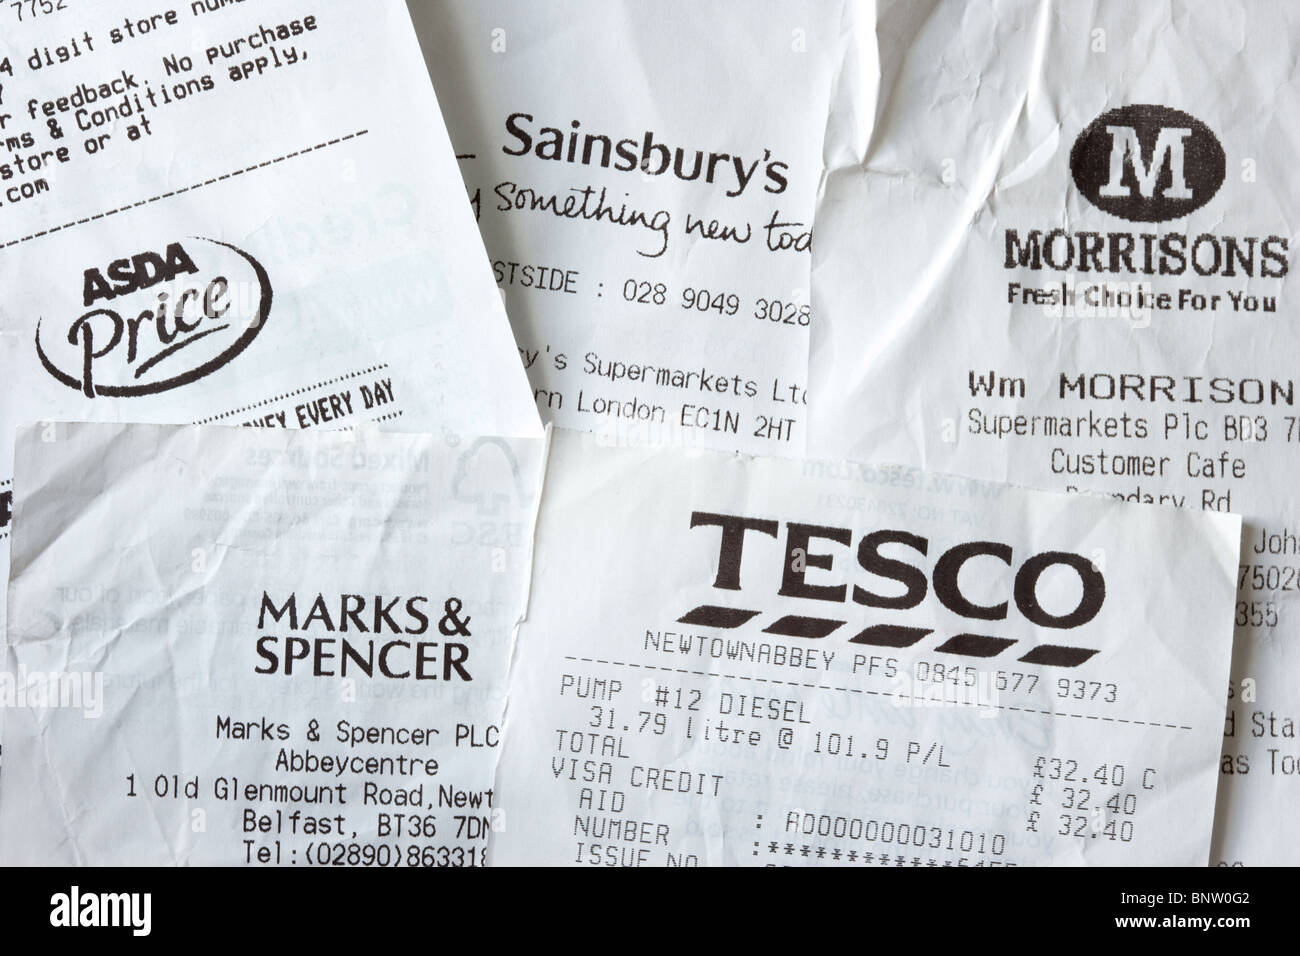 till receipts from major uk supermarkets including tesco sainsburys asda morrisons and marks and spencer - Stock Image